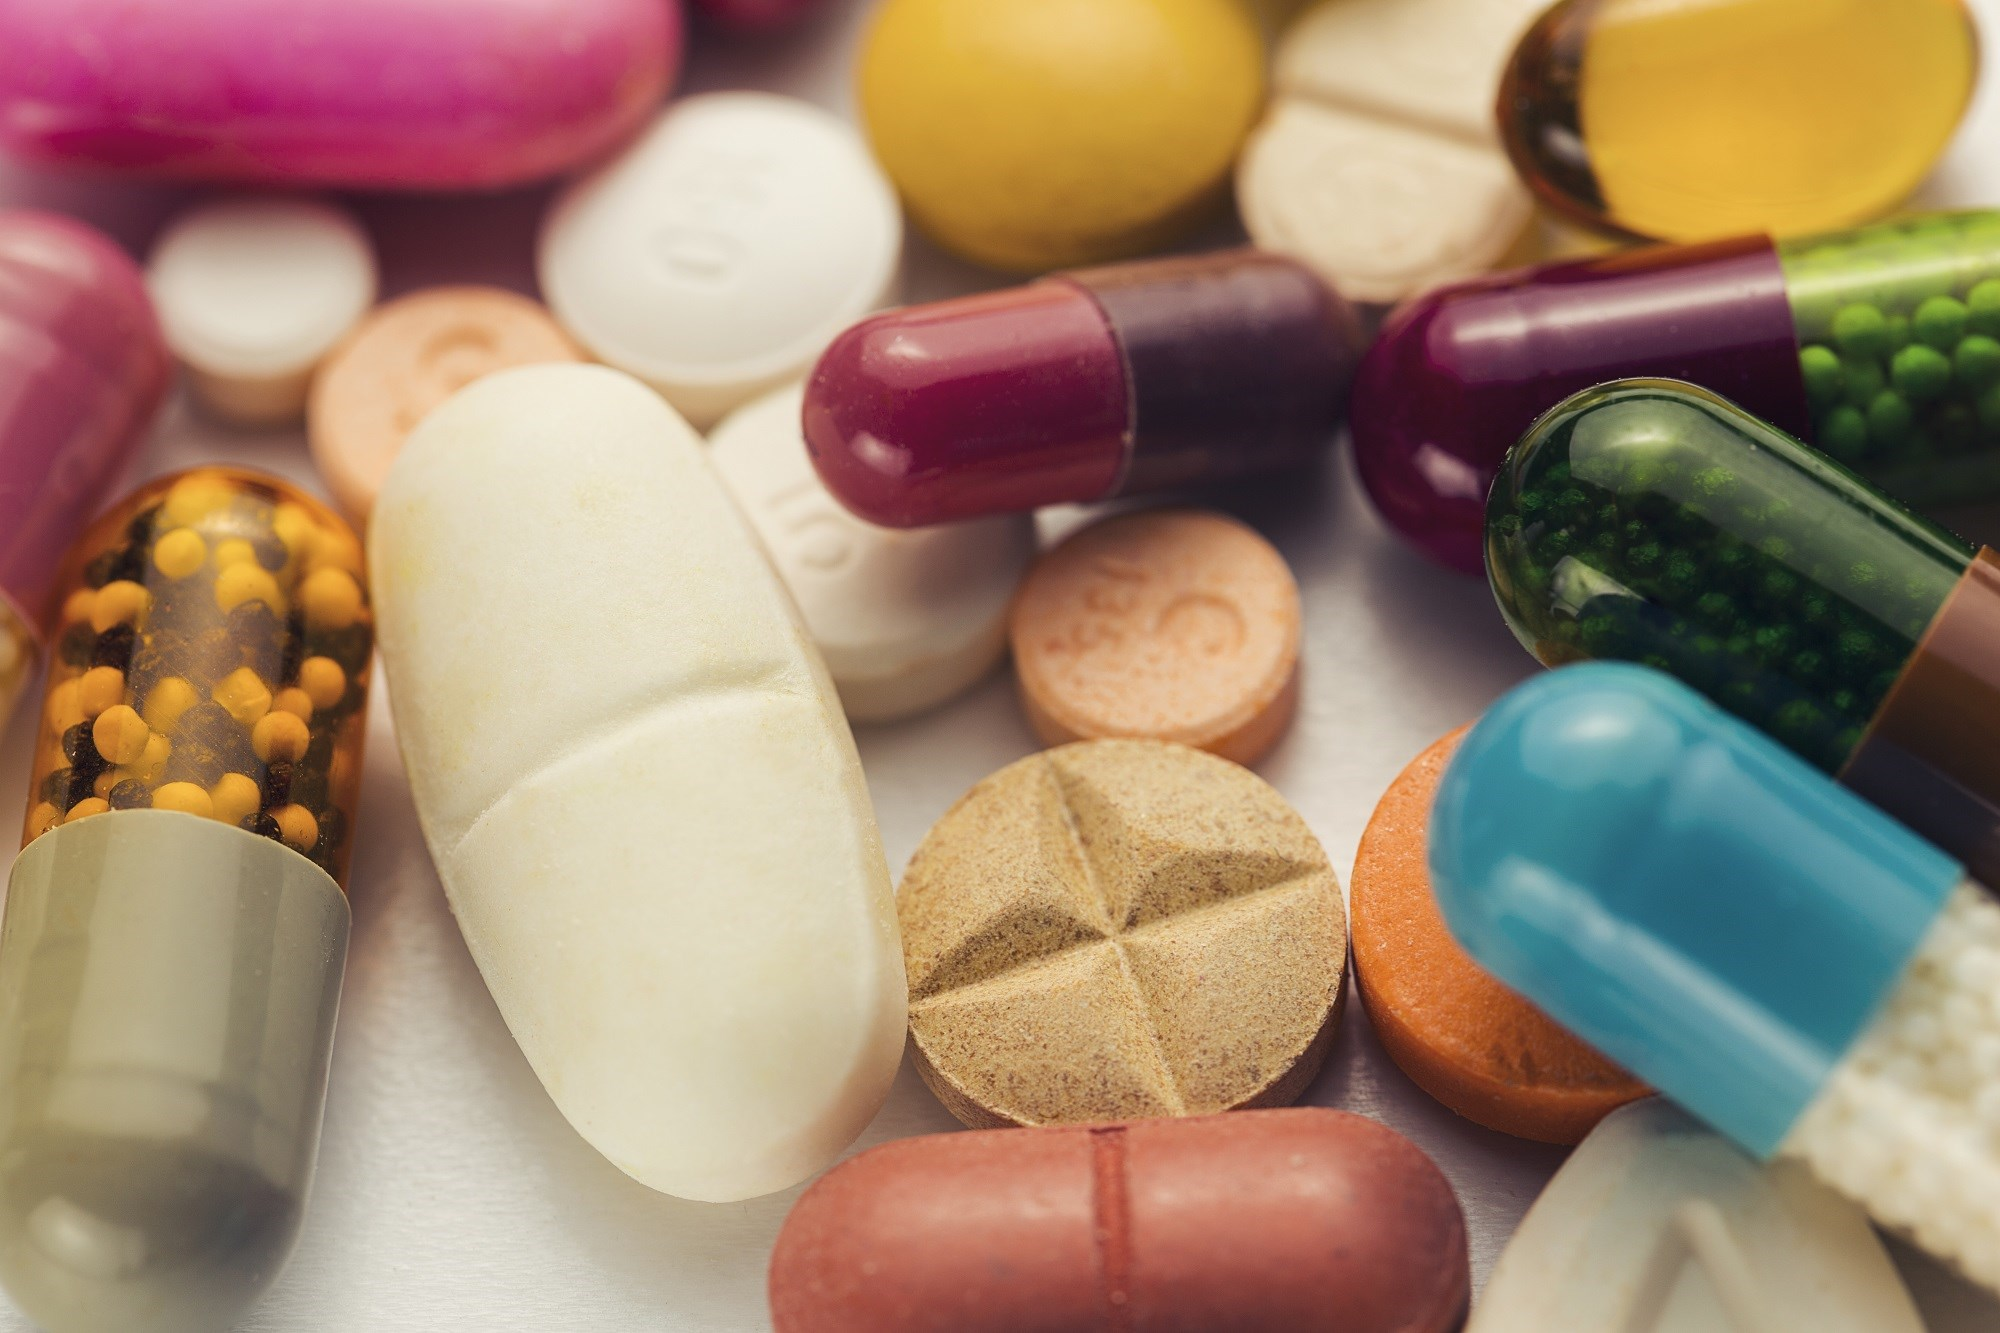 The FDA has announced a new plan to significantly modernize the regulation and oversight of dietary supplements.